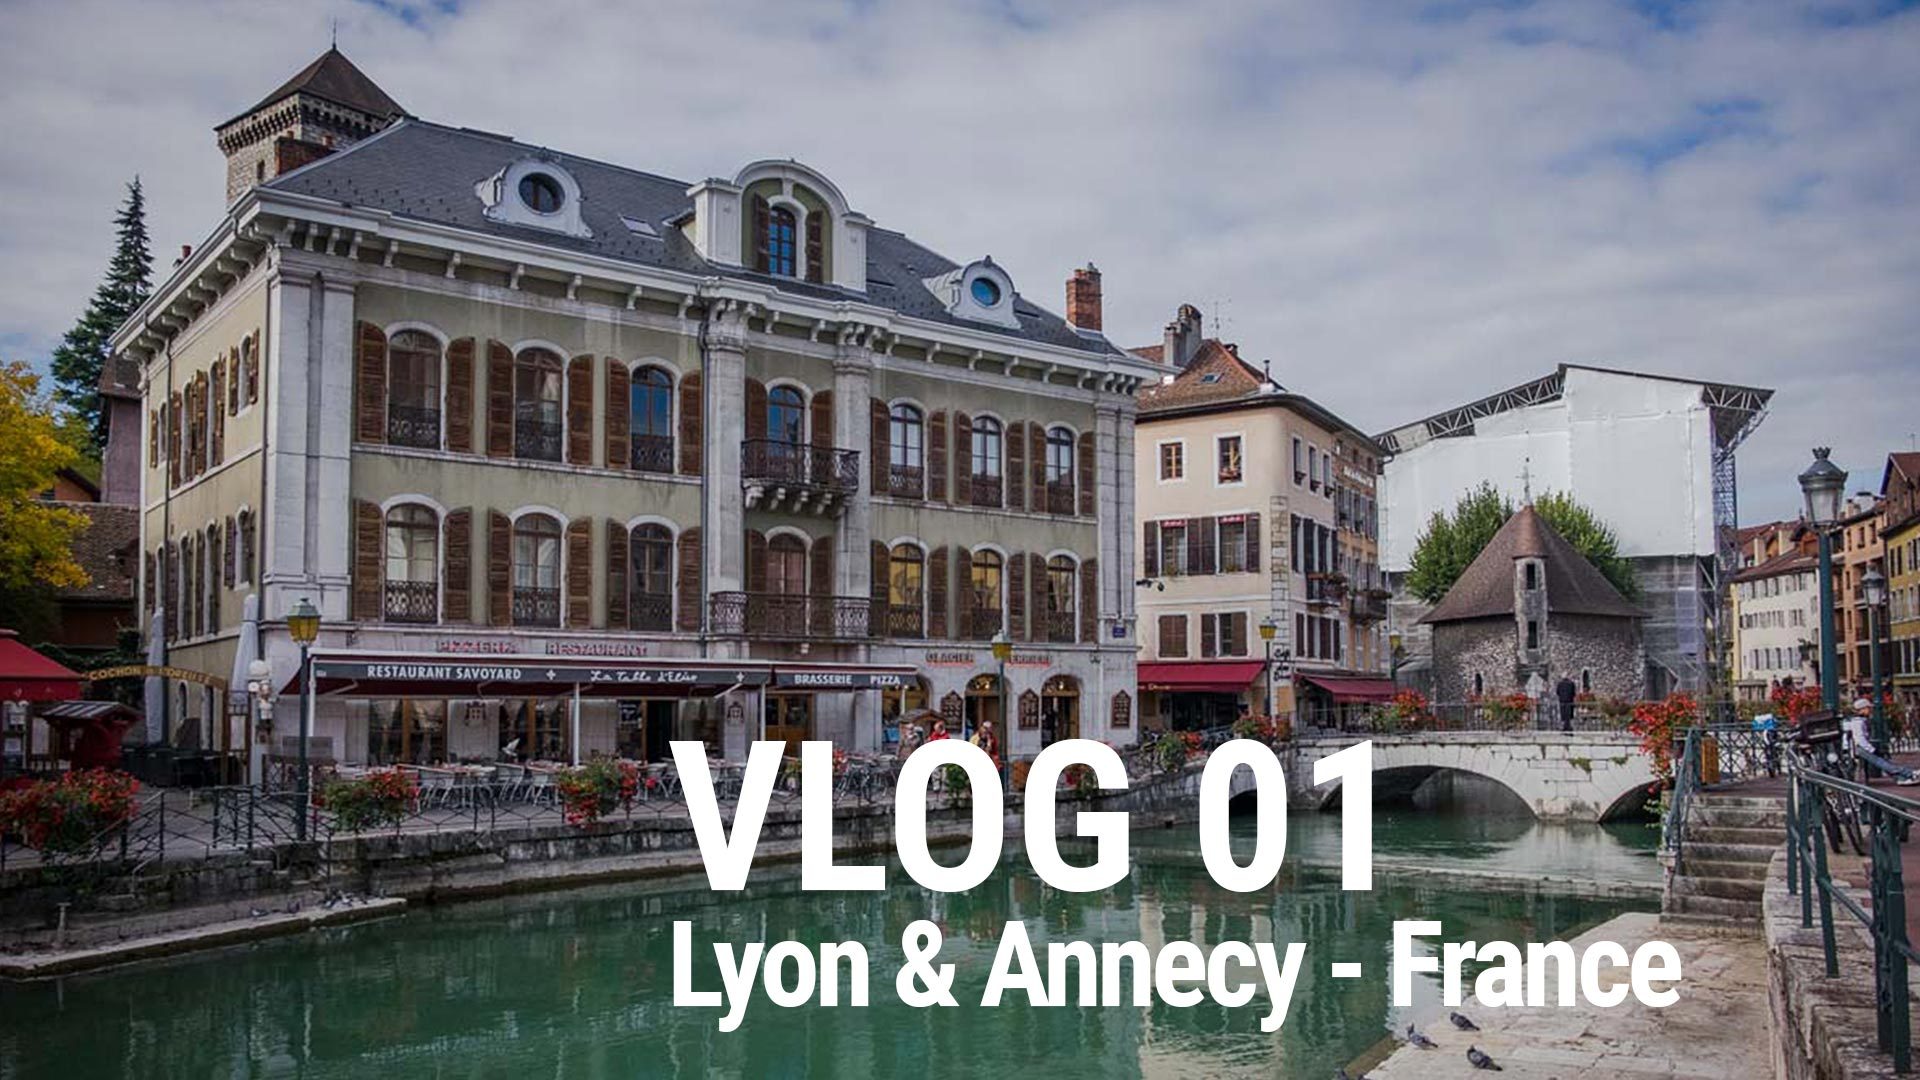 VLOG Launched – First VLOG takes you to France